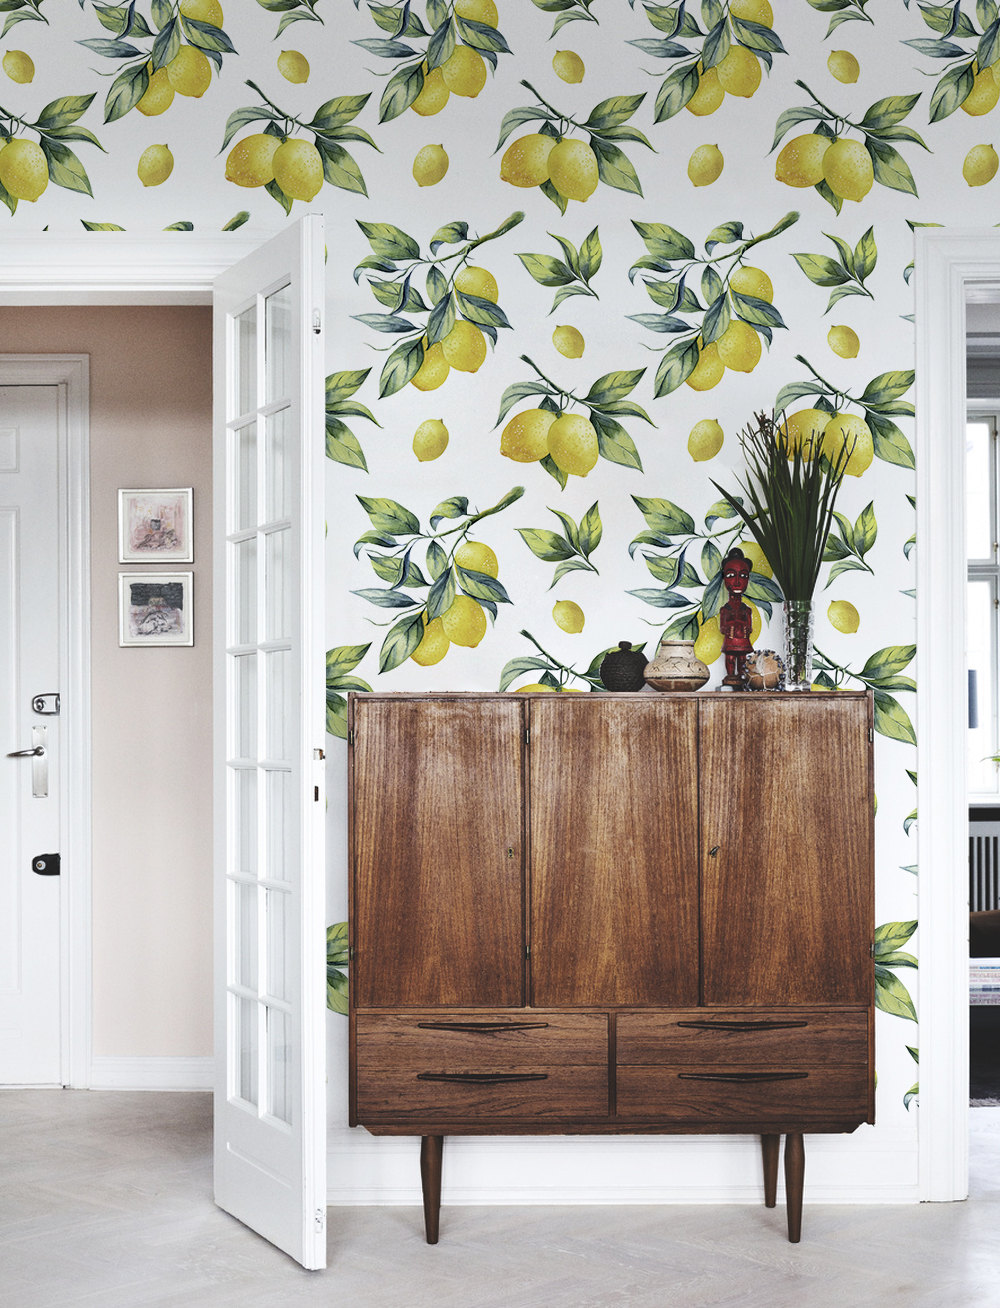 Lemon Wallpaper Removable Wallpapers Peel And Stick Wall Murals Temporary Wall Covers Easy Sti Removable Wallpaper Wall Murals Best Removable Wallpaper